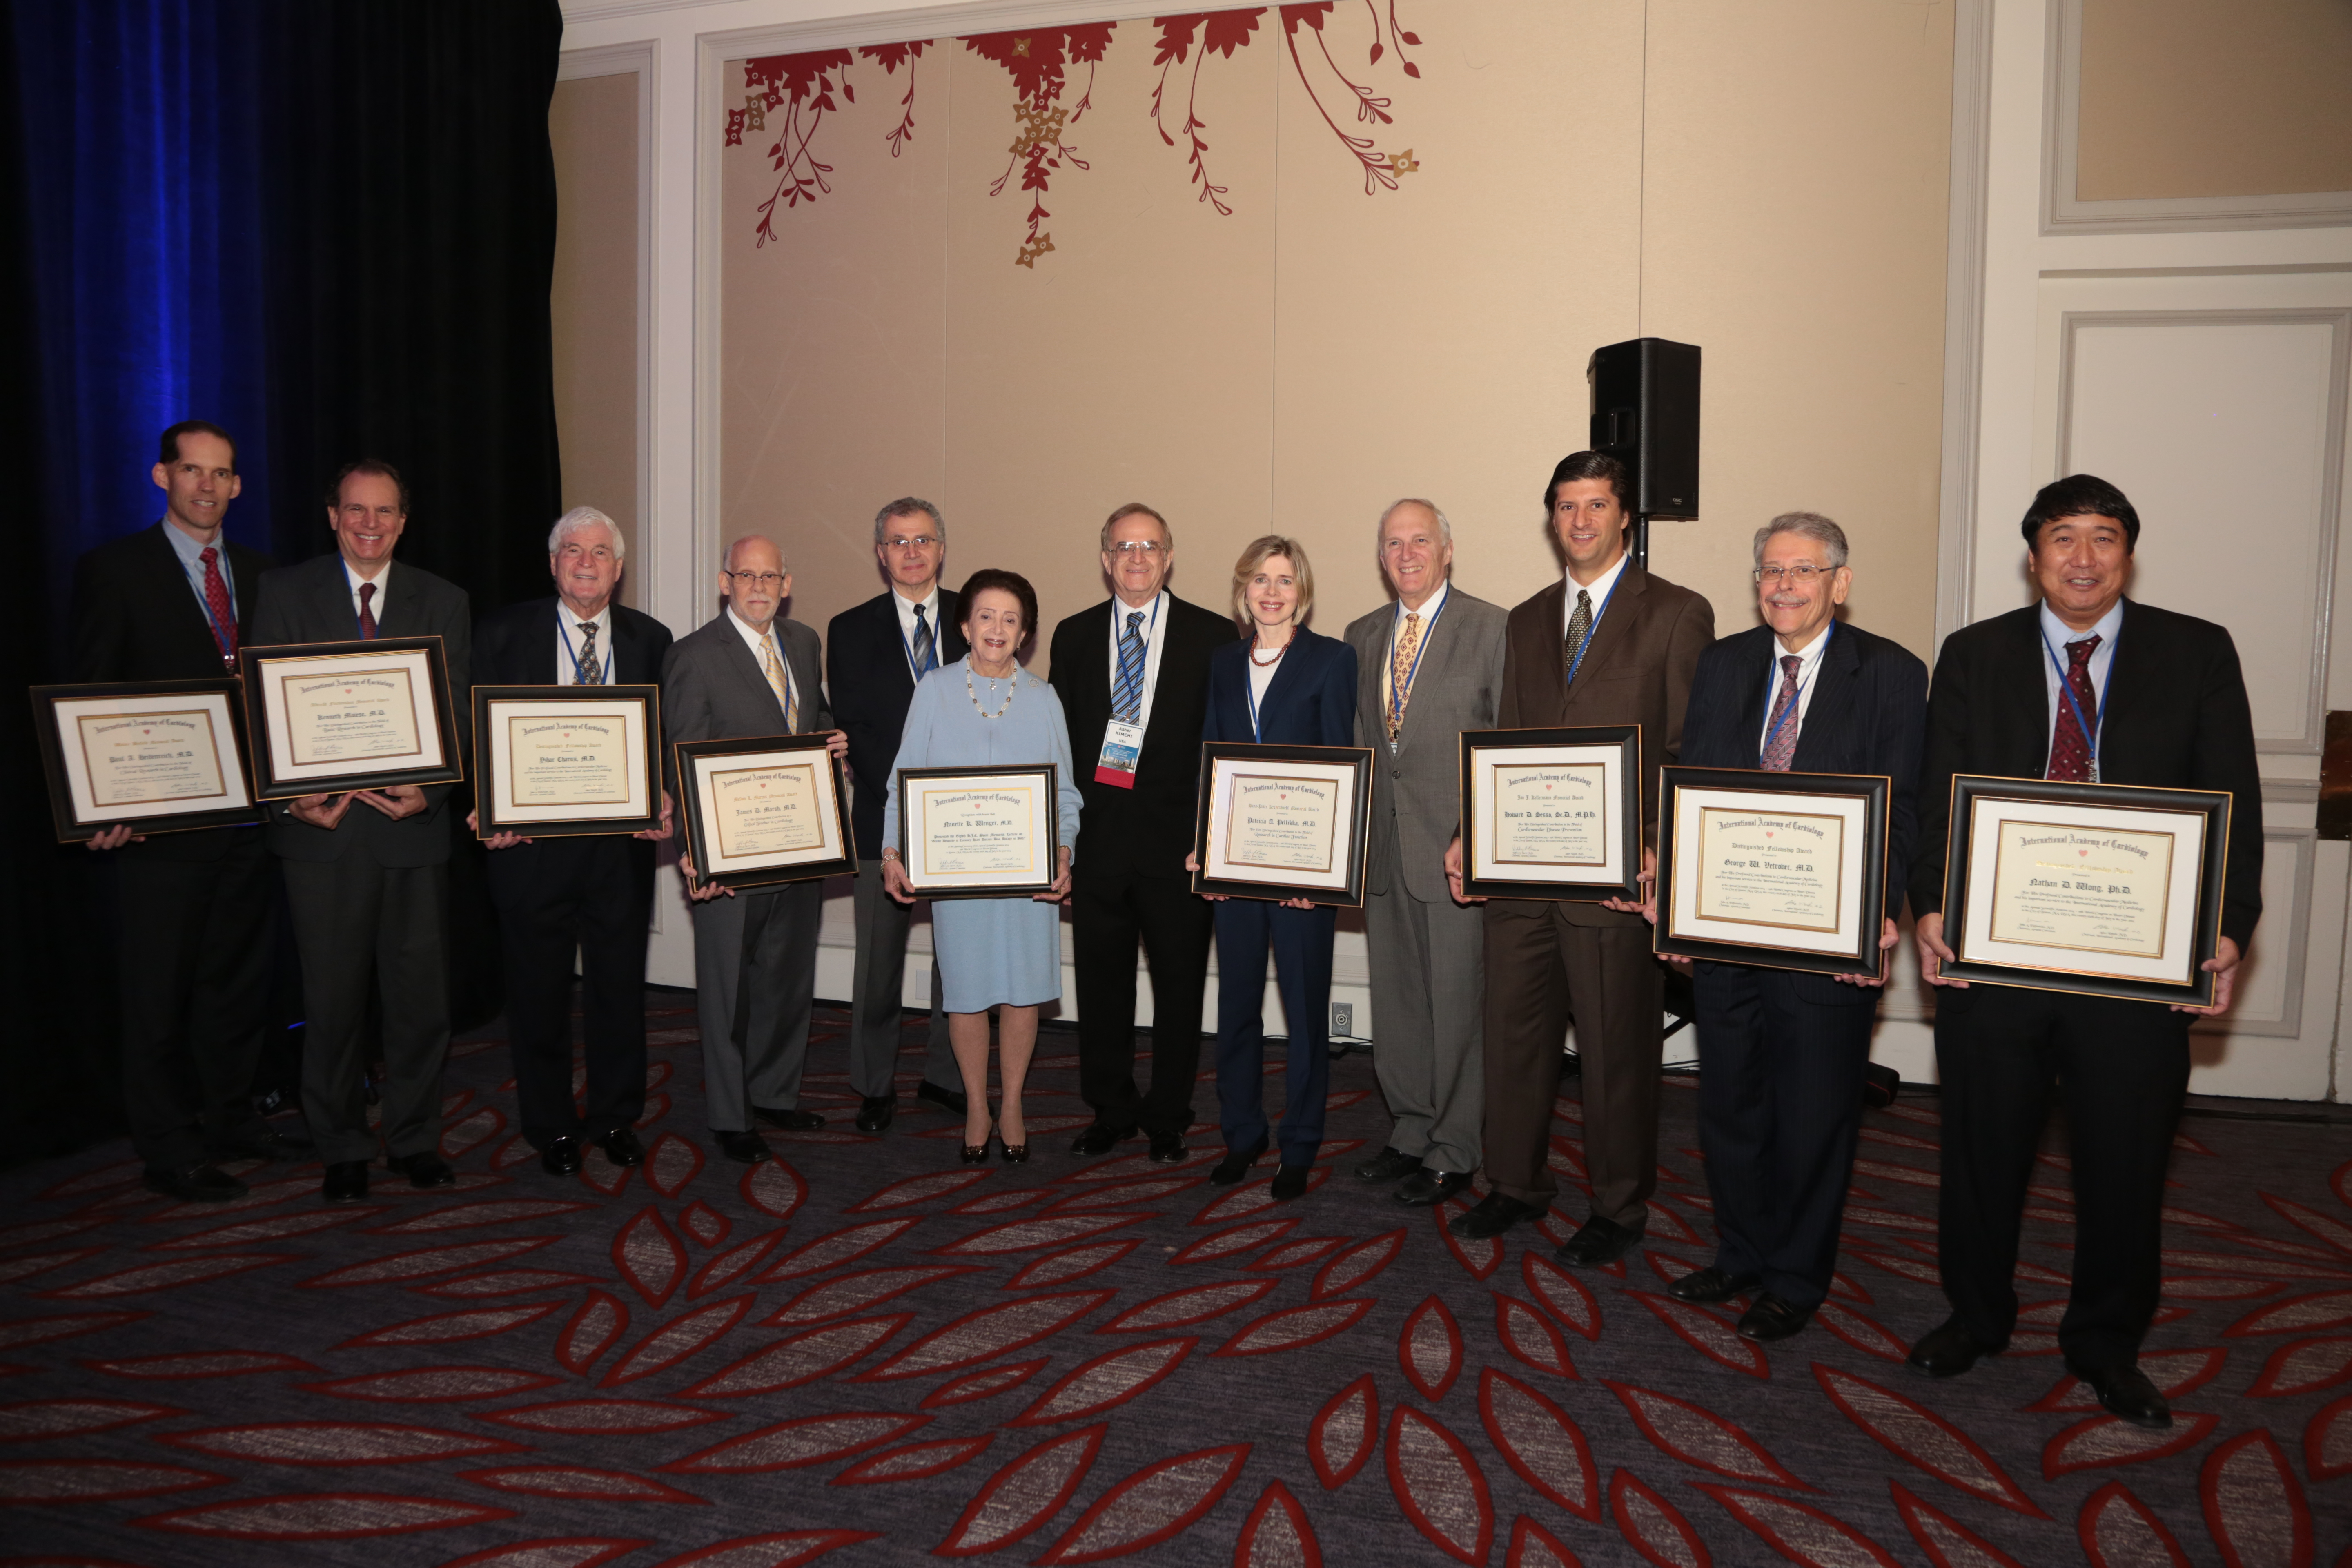 International Academy of Cardiology 2014 Awards